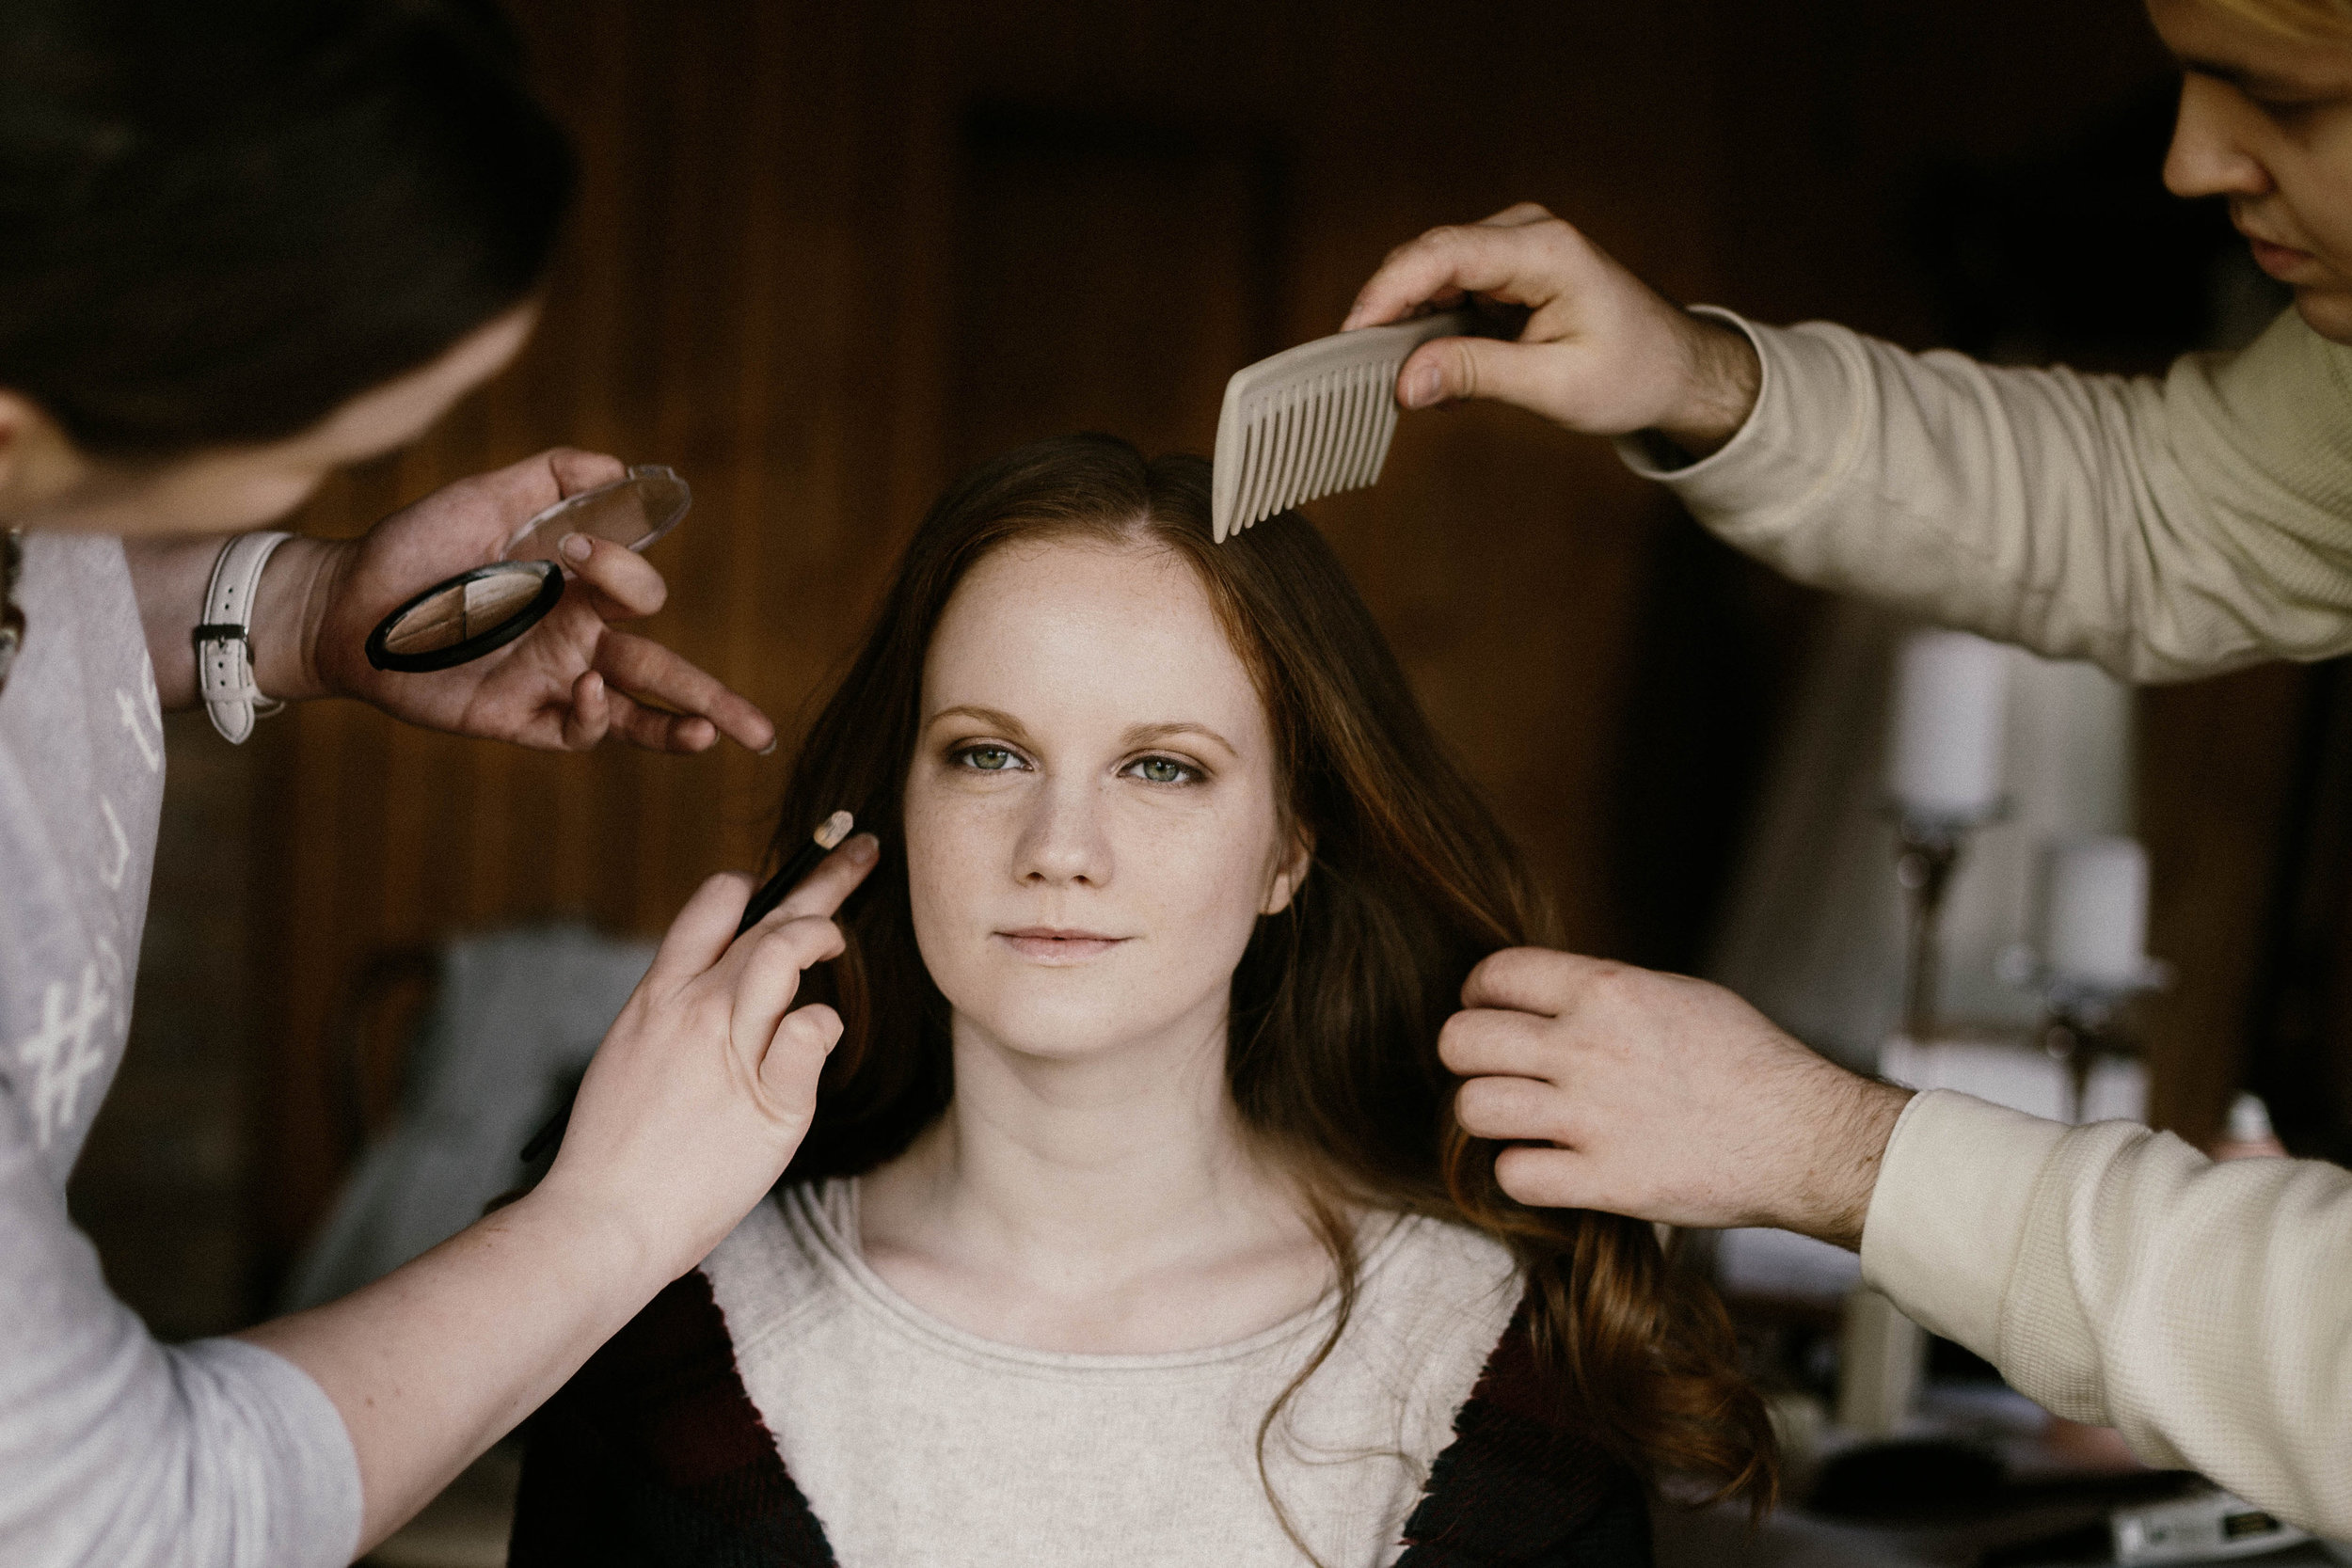 beauty team kezei alatt - szlamizita make up és kornel hairbert fotó: just stay natural